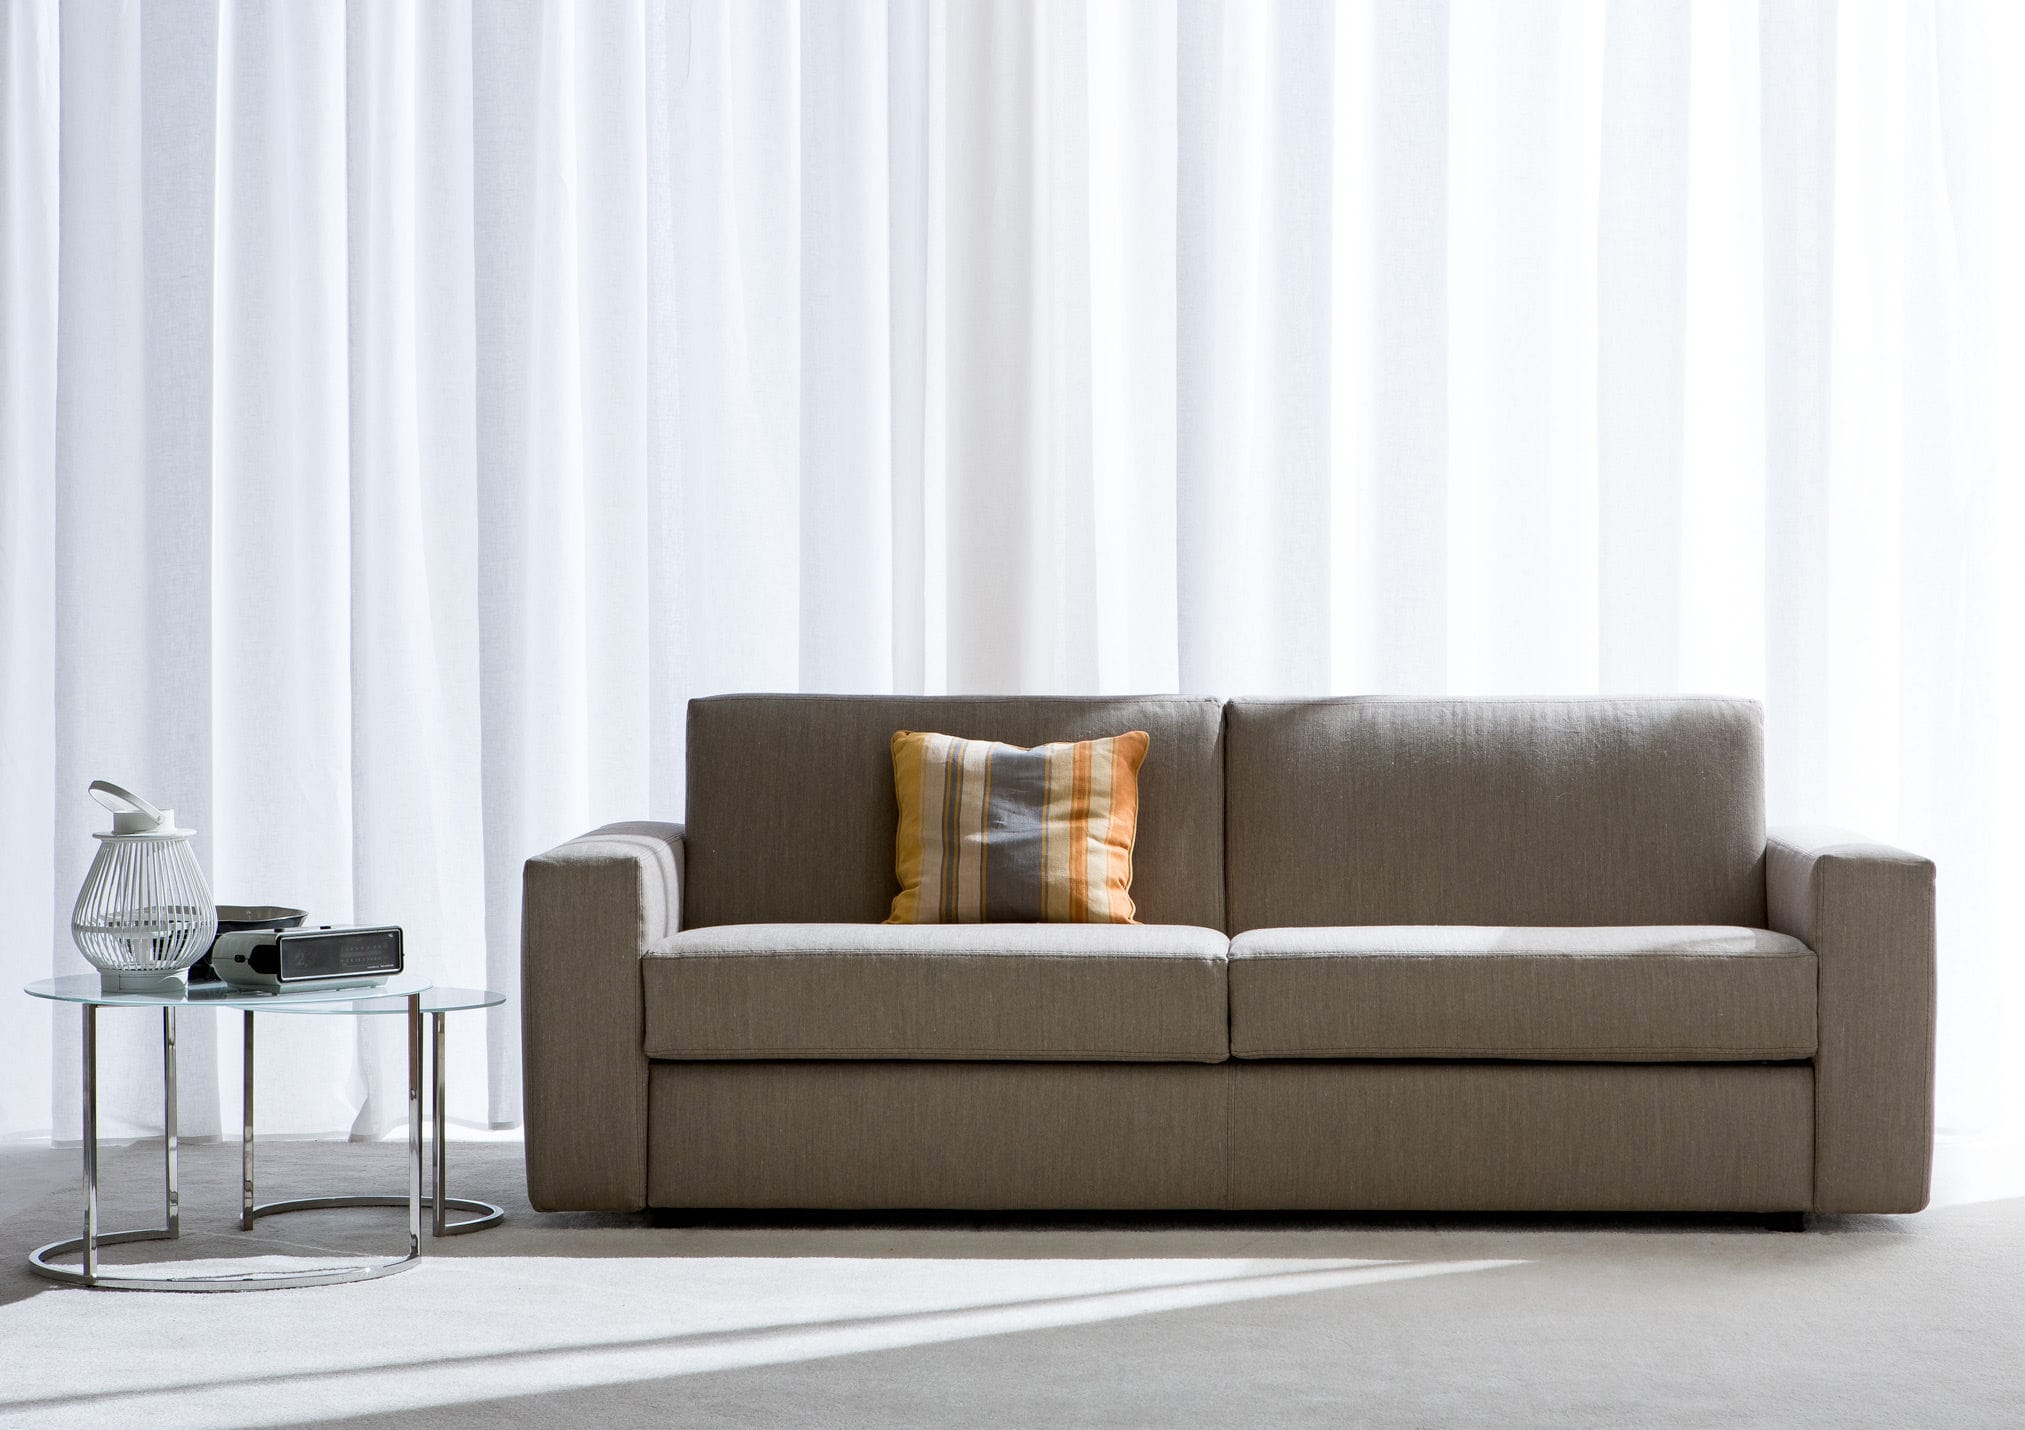 Sofa Bed Contemporary Fabric Leather SAN DIEGO CITY - Sofa bed san diego